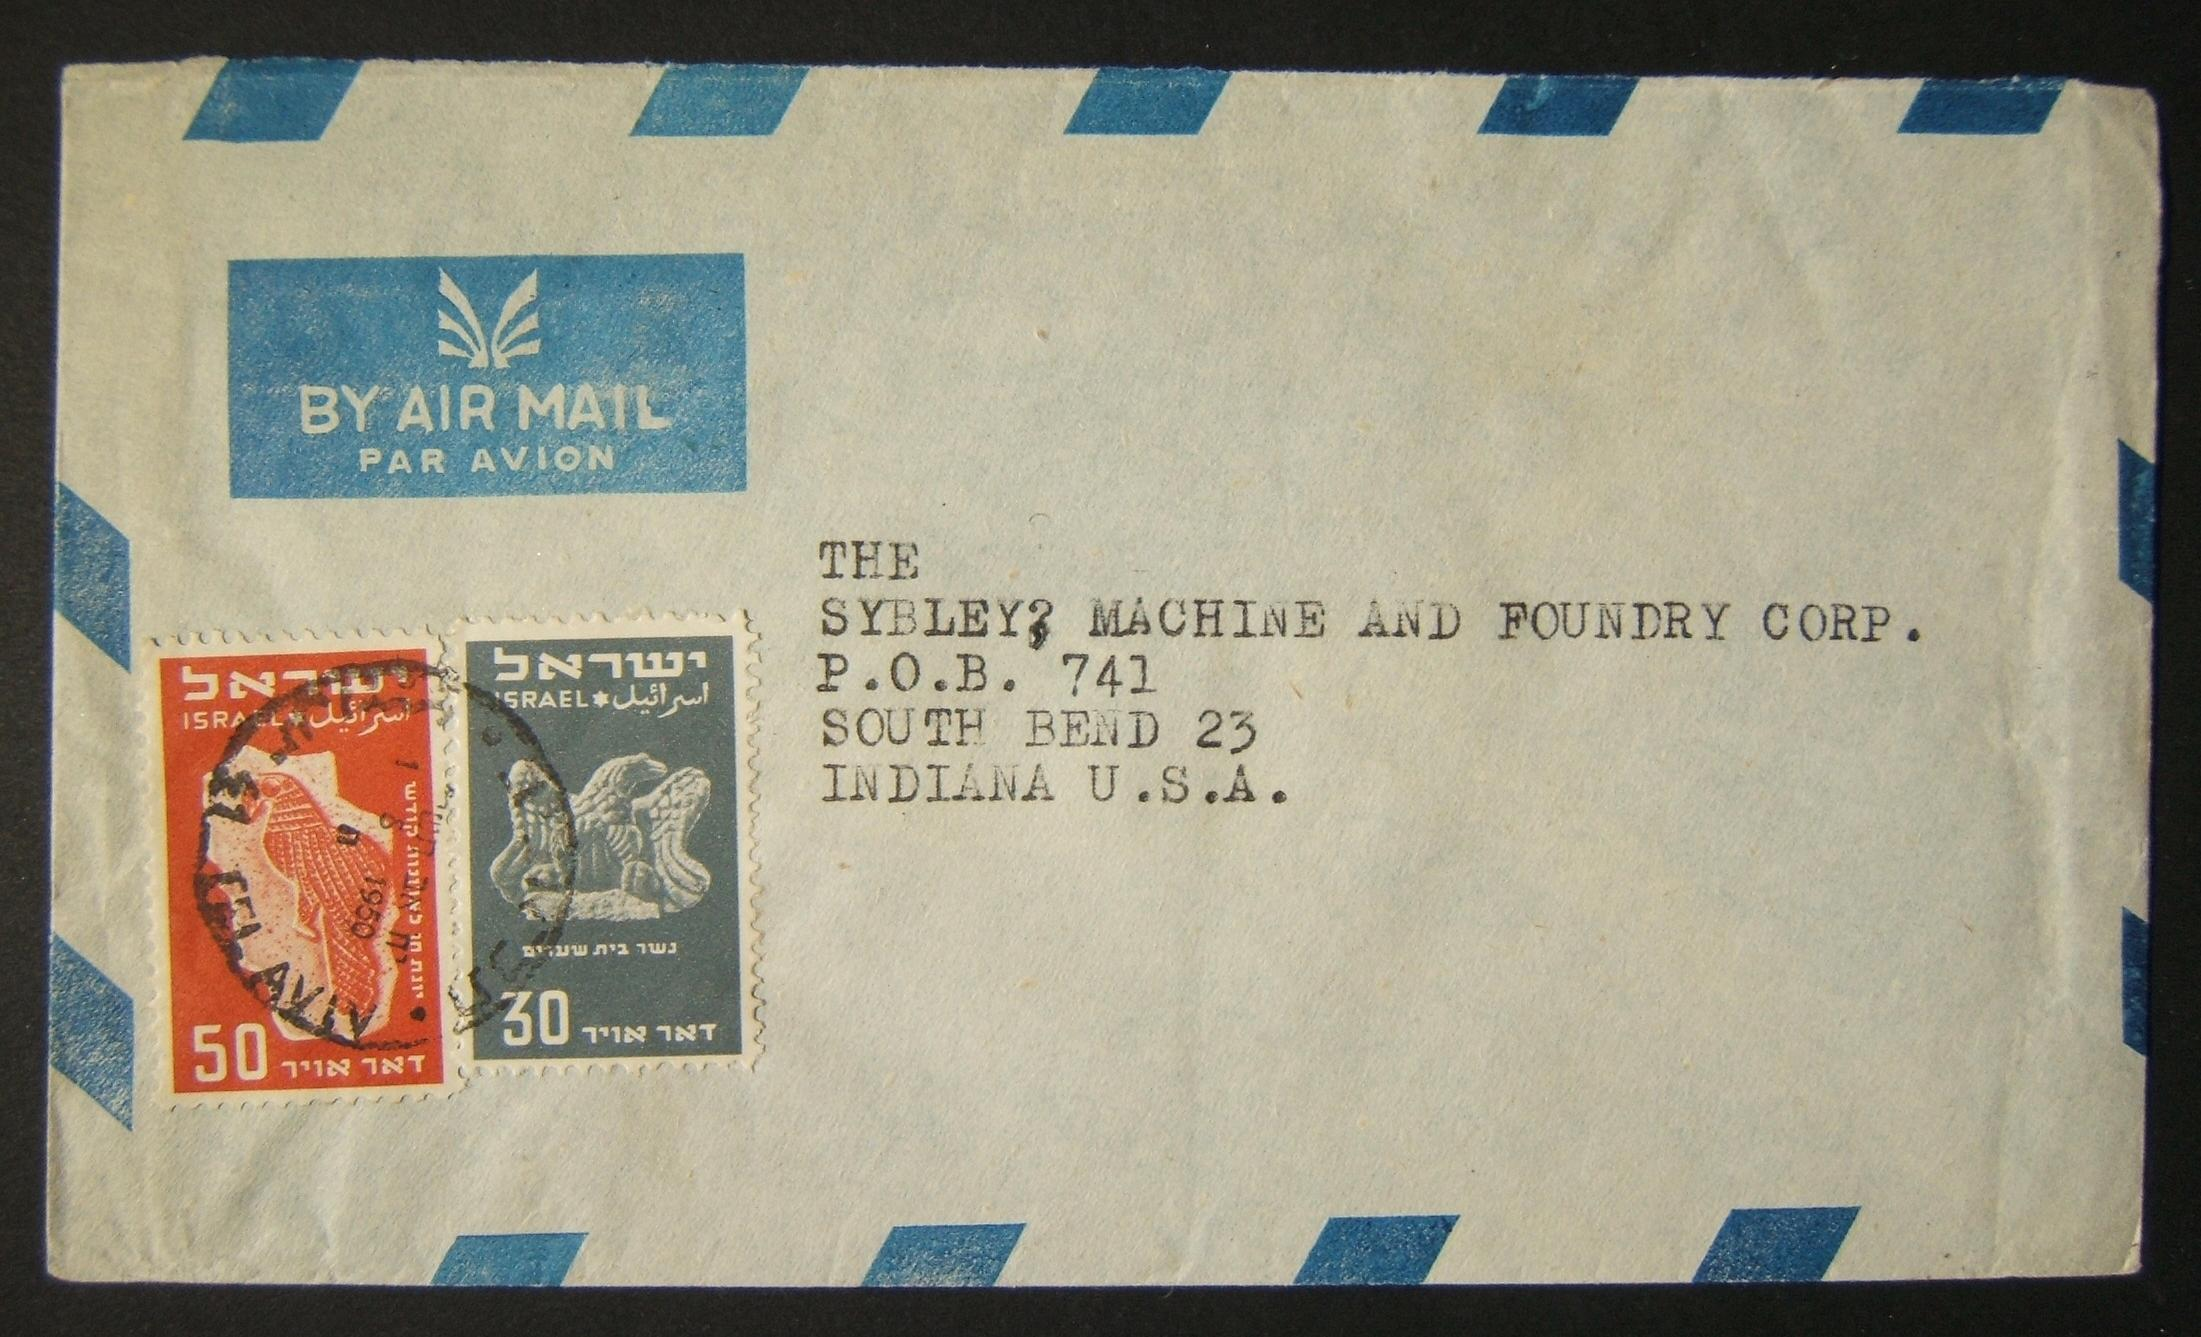 1950 1st airmail / PO's, rates & routes: 1-8-1950 airmail stationary commercial cover ex TLV to INDIANA franked 80pr at the FA-2a period letter rate using 30pr & 50pr (Ba33/35) tie